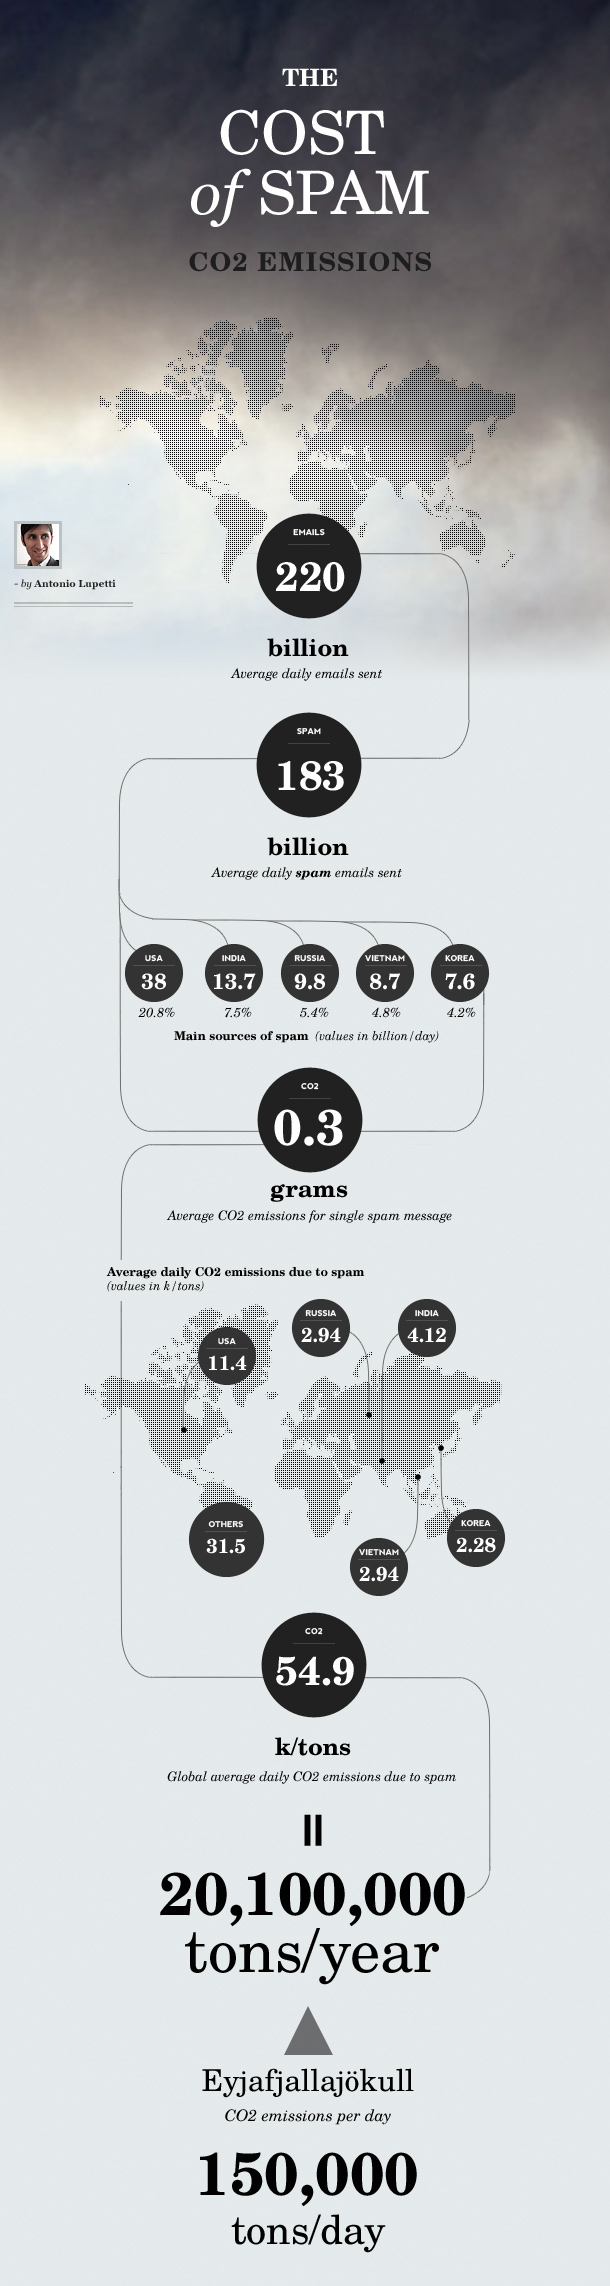 Infographic: Cost of Spam: C02 Emissions